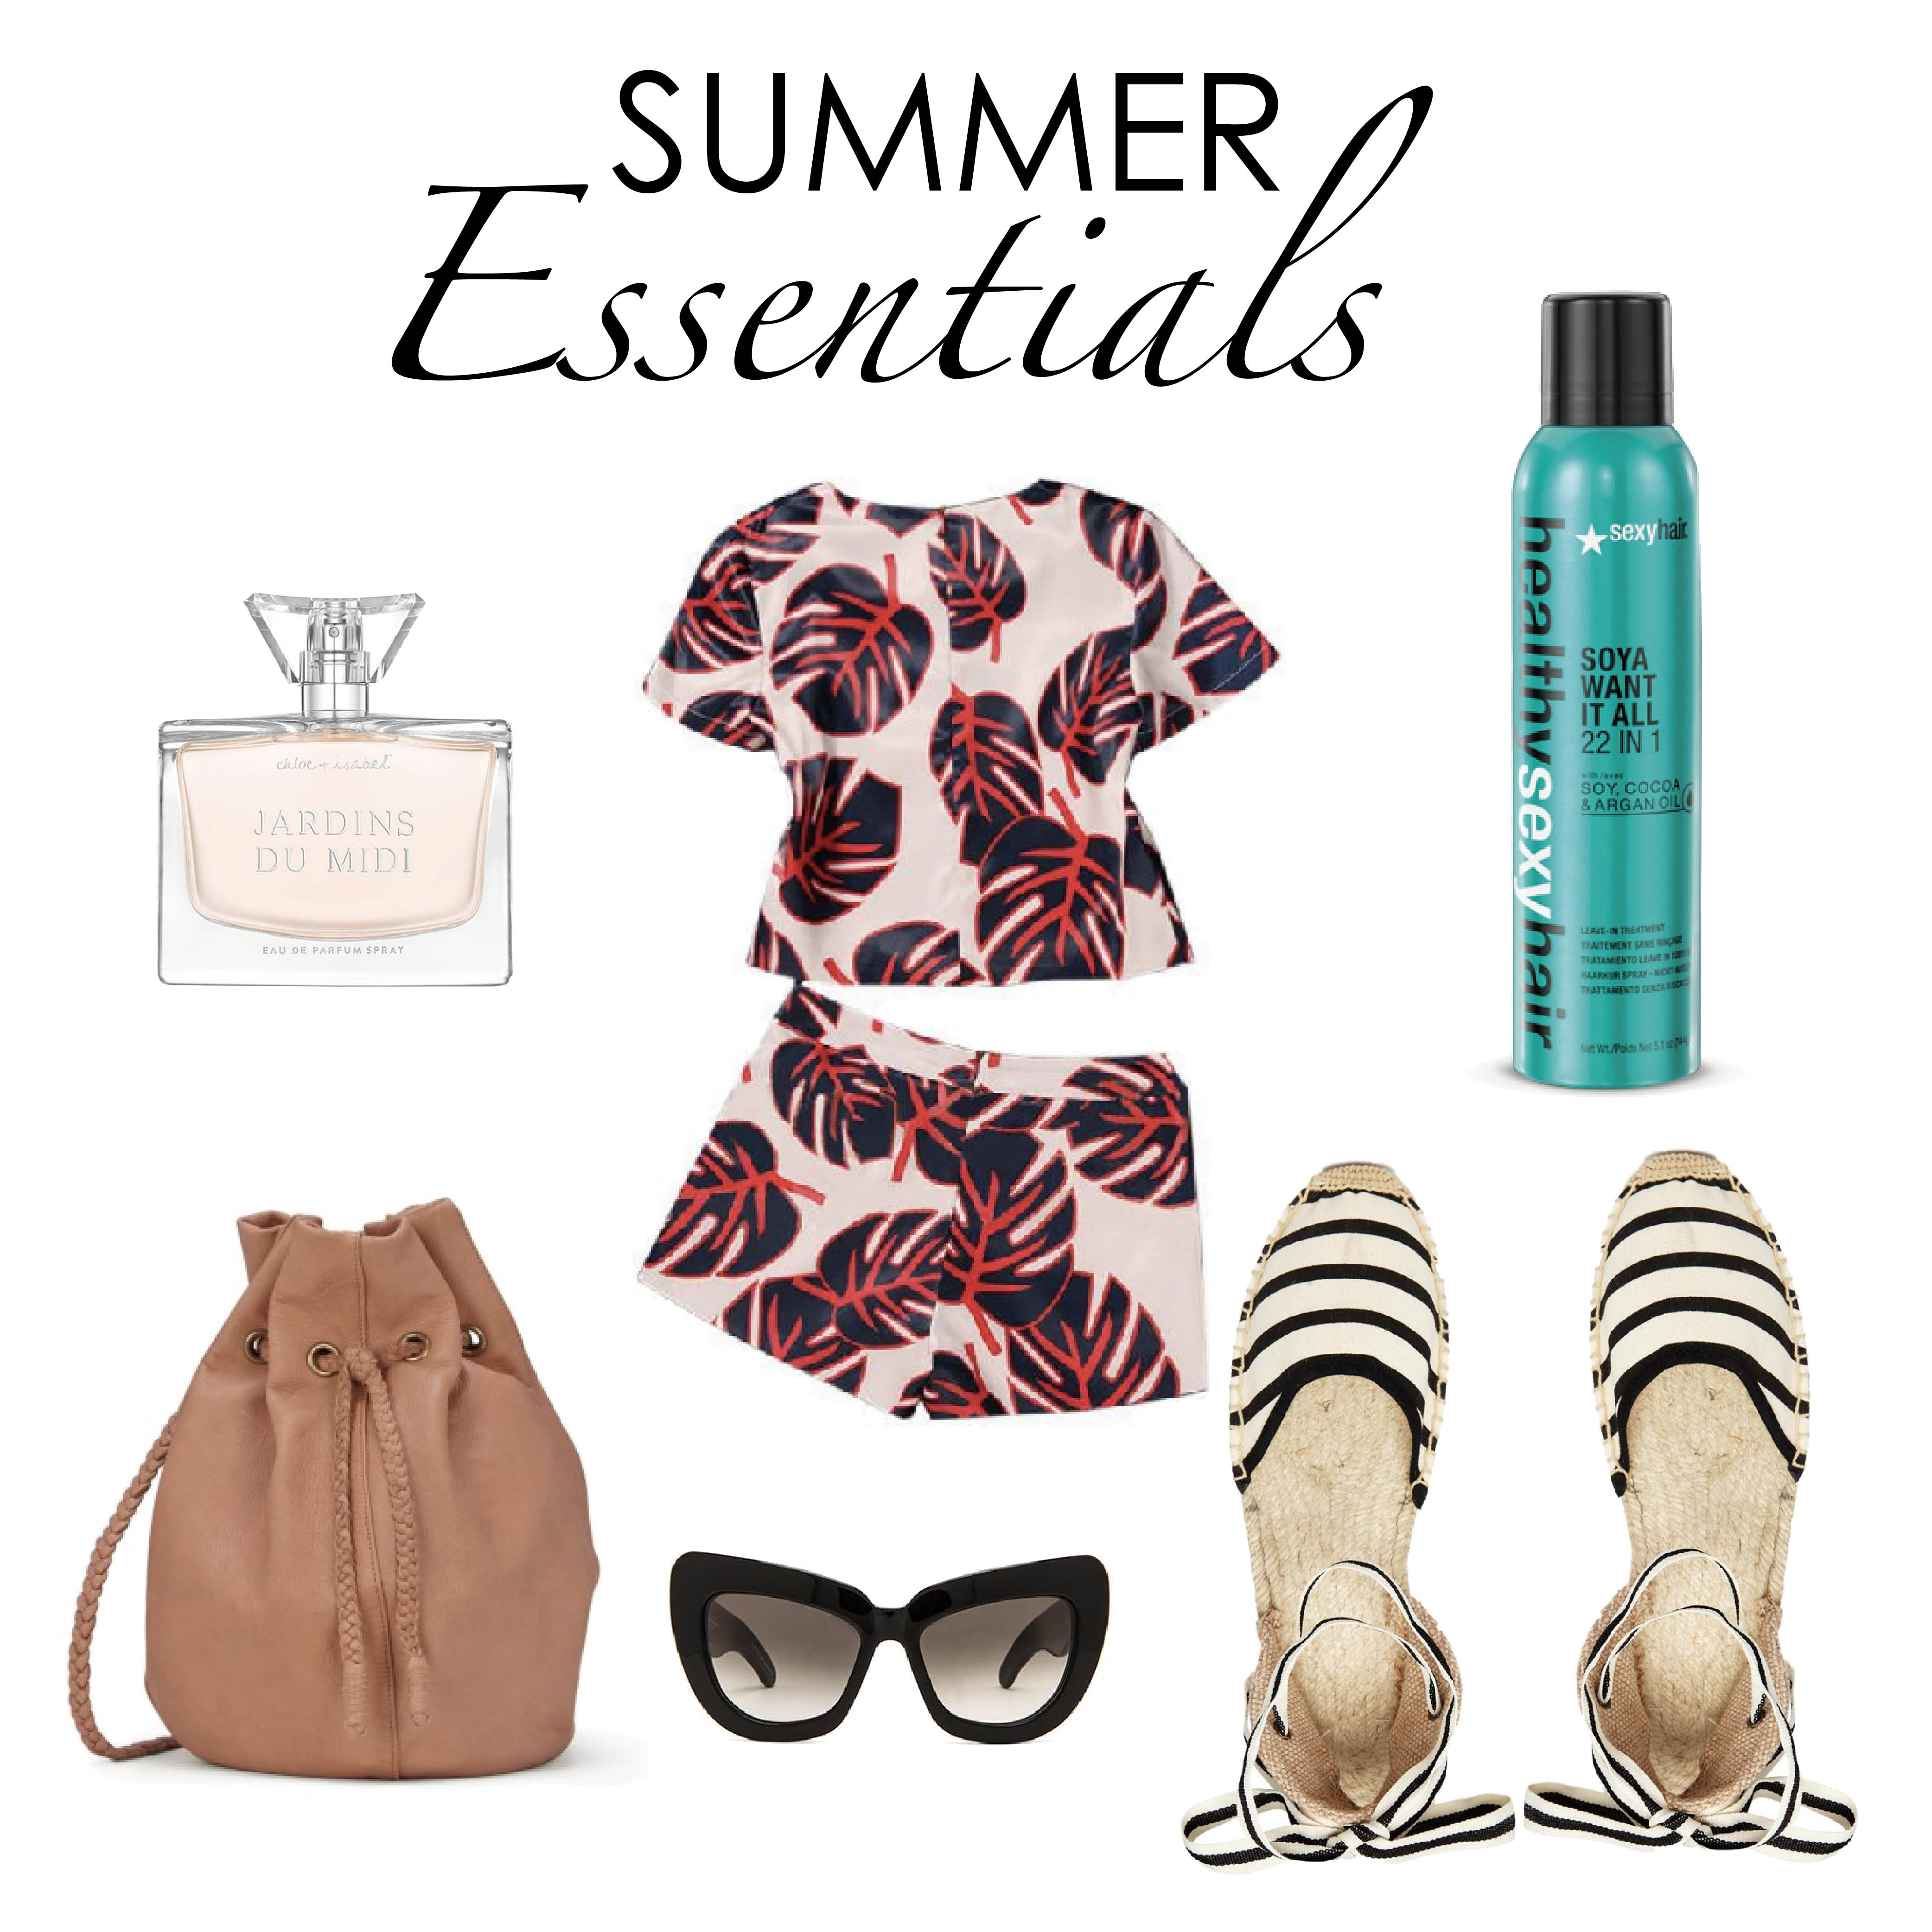 Summer Essentials, Crop, Shorts, Beach, Hair, Beauty, Fashion, Shoes, Summer